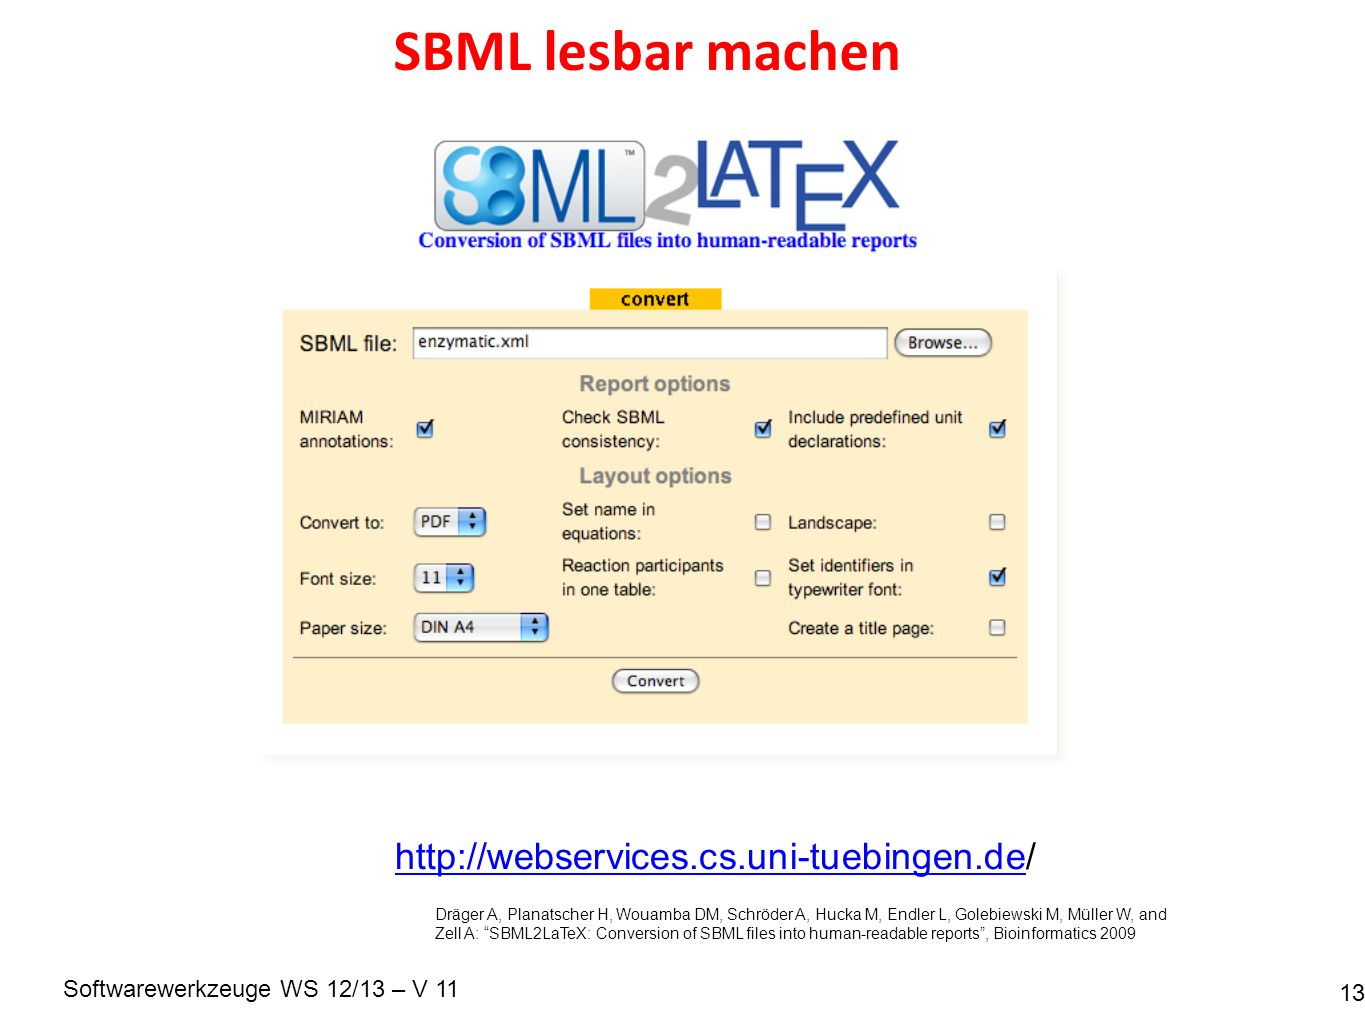 Softwarewerkzeuge WS 12/13 – V 11 SBML lesbar machen 13 http://webservices.cs.uni-tuebingen.dehttp://webservices.cs.uni-tuebingen.de/ Dräger A, Planatscher H, Wouamba DM, Schröder A, Hucka M, Endler L, Golebiewski M, Müller W, and Zell A: SBML2LaTeX: Conversion of SBML files into human-readable reports, Bioinformatics 2009